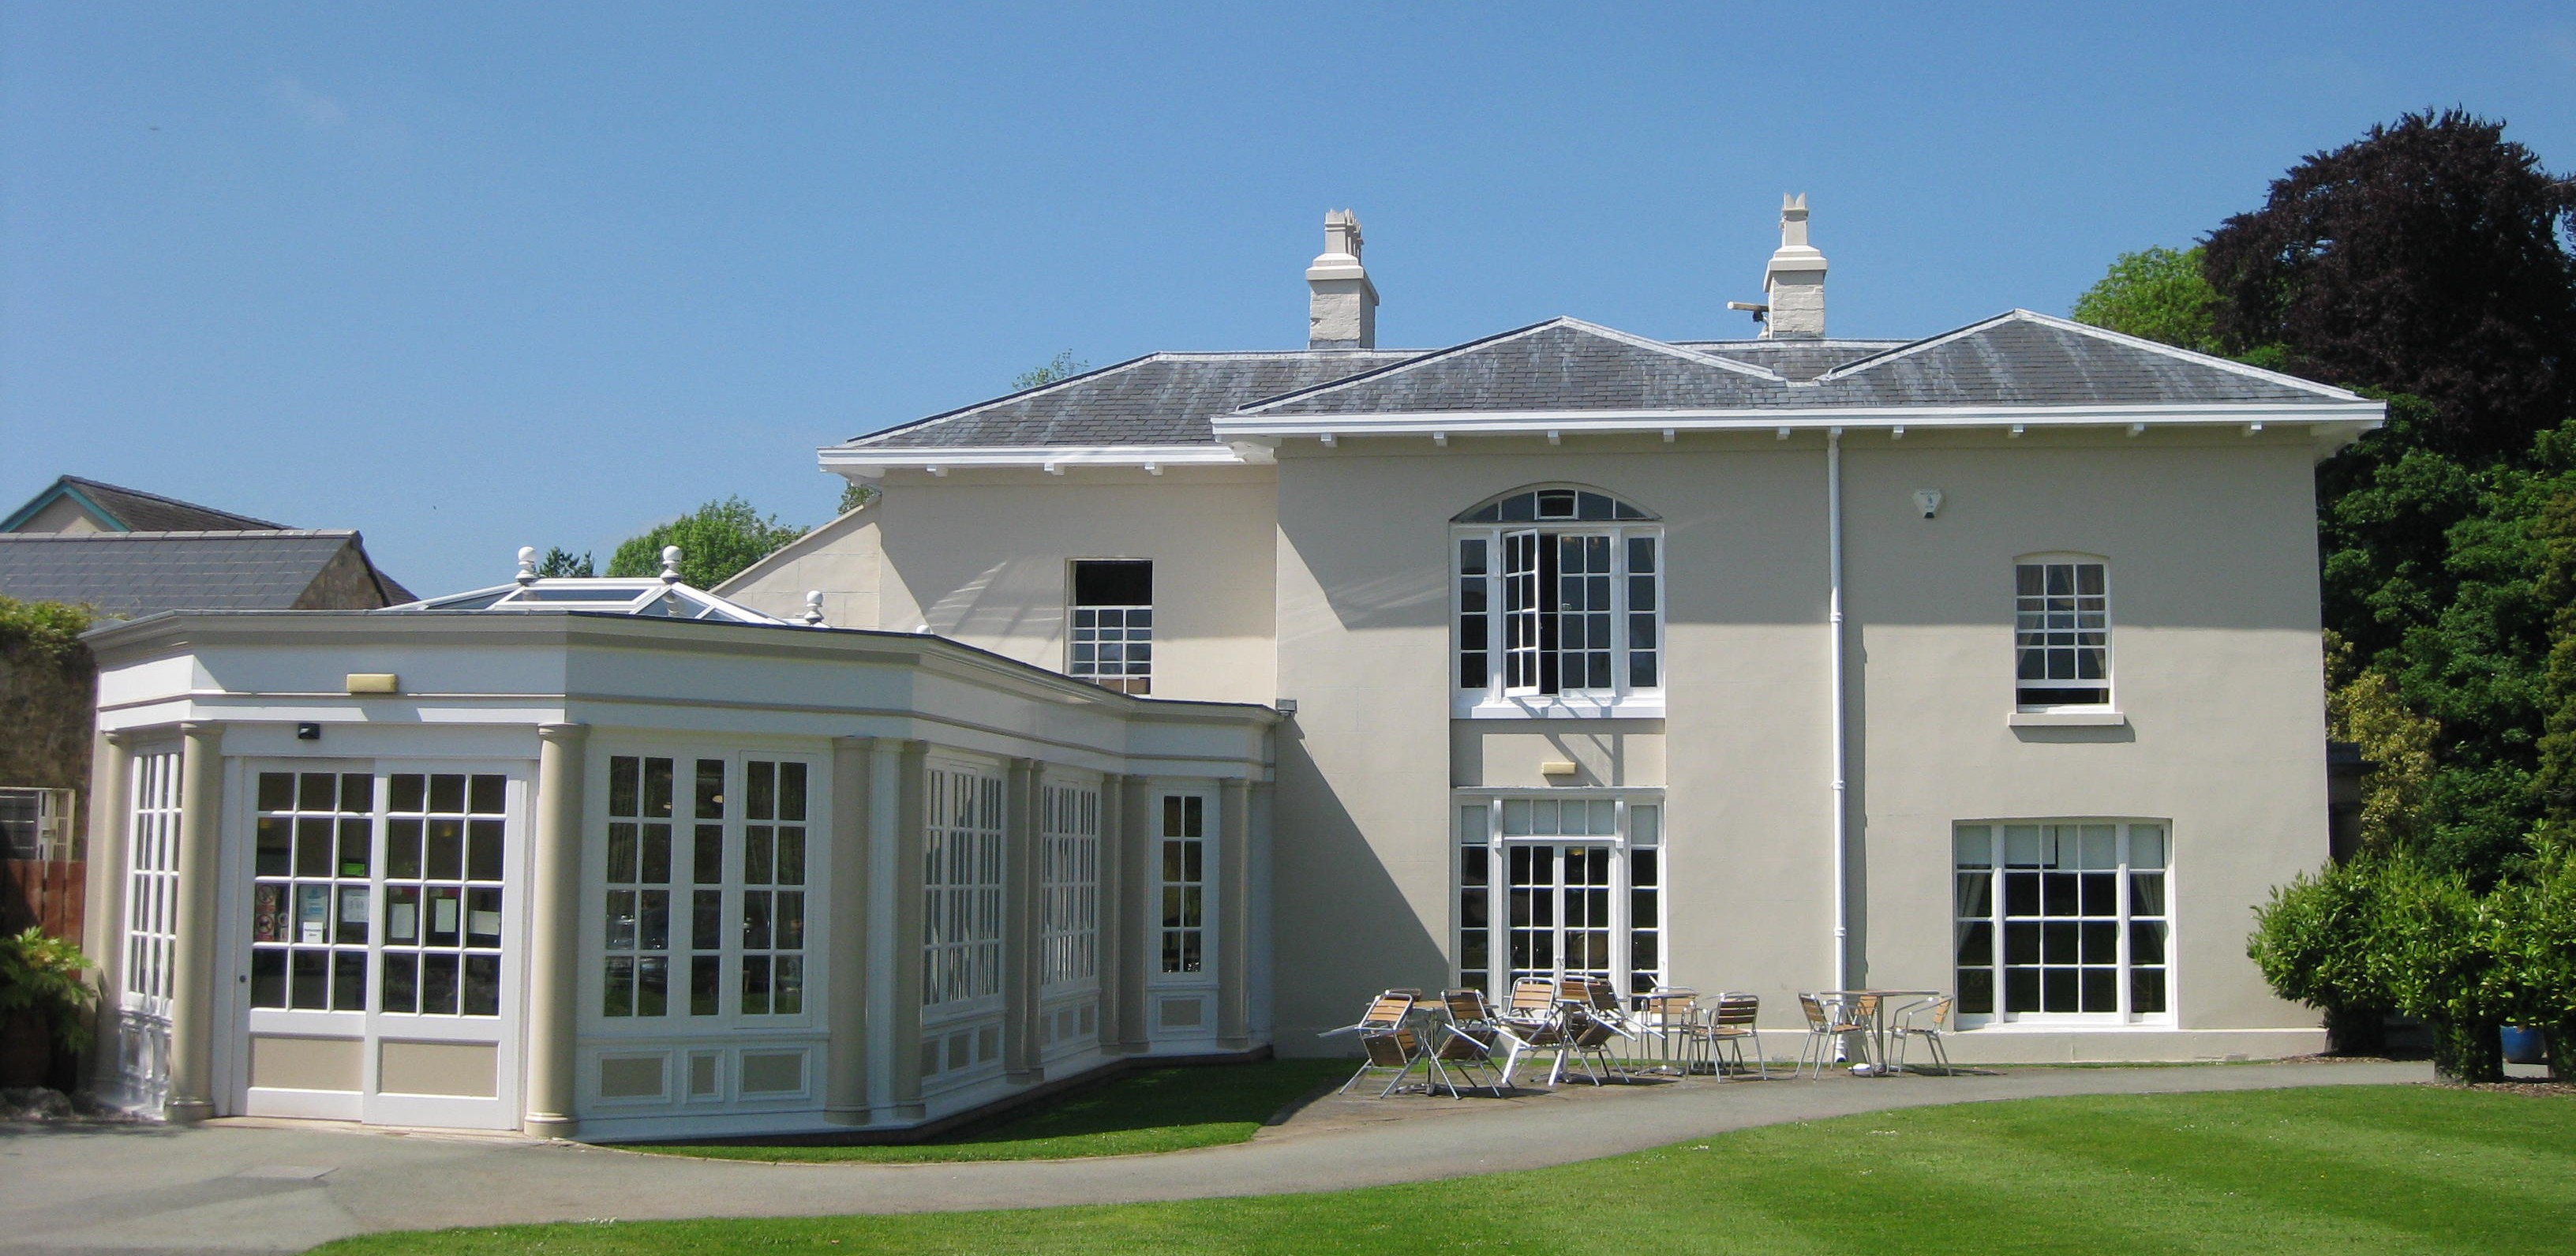 The Orangery at Derwen College